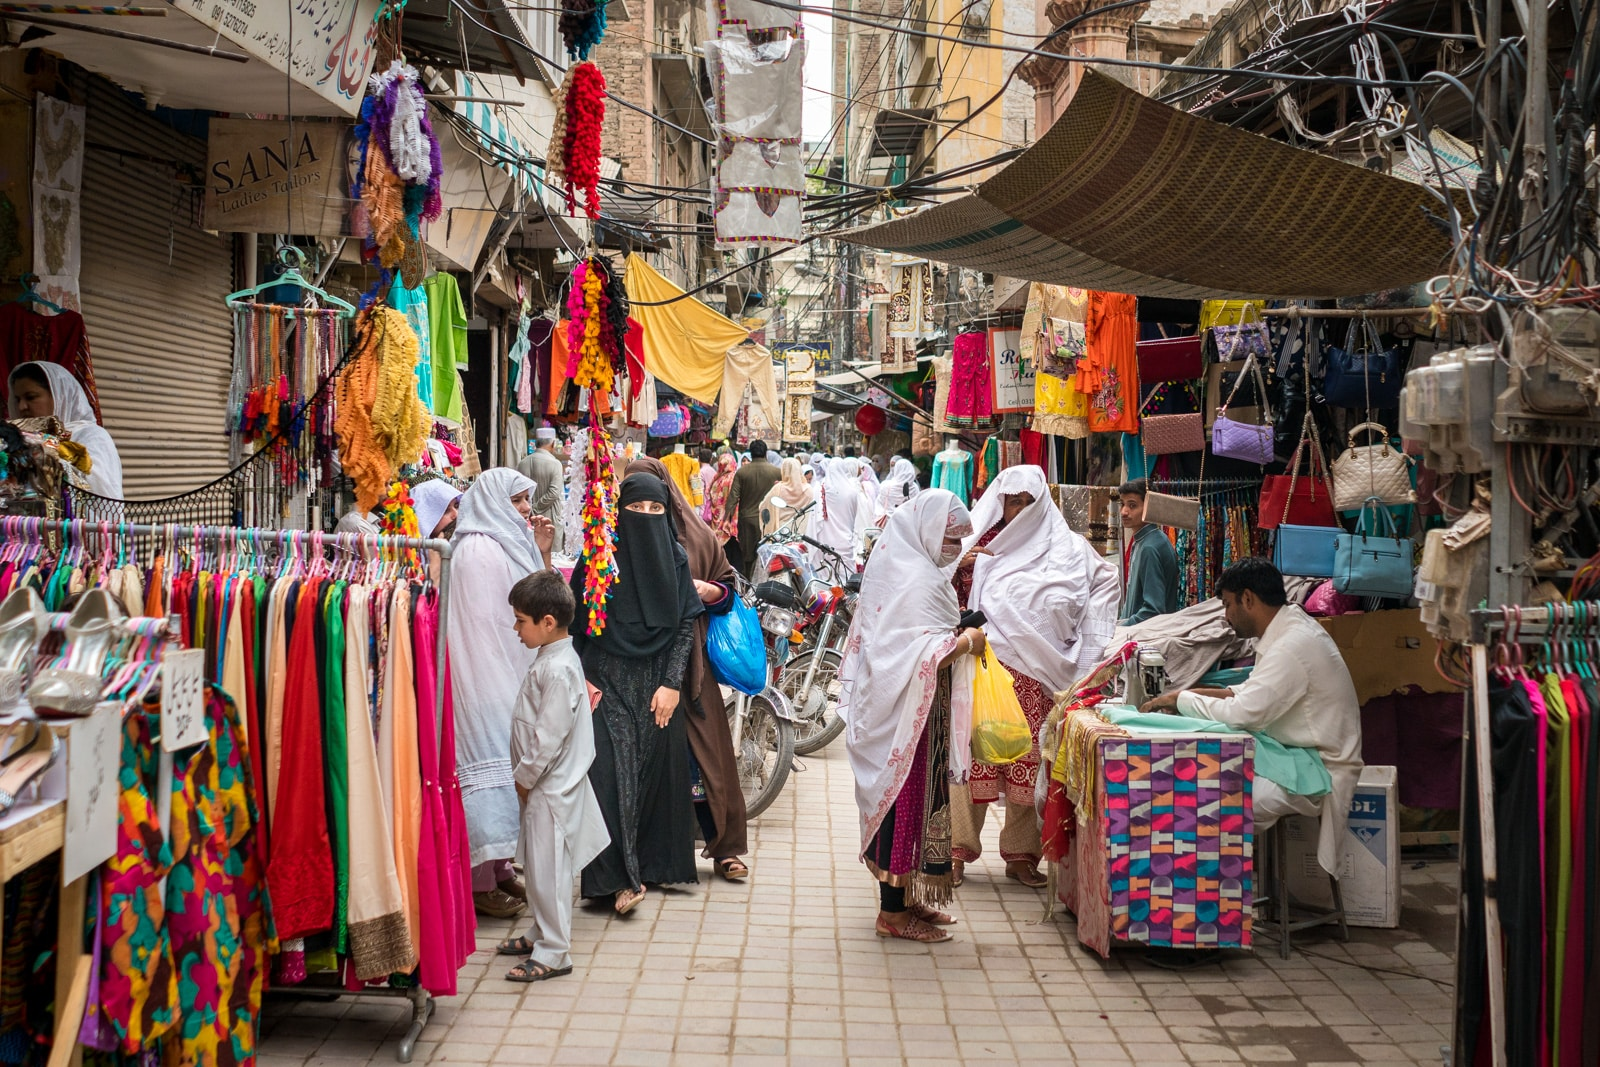 Reverse culture shock from long-term travel - Women in chador in Peshawar - Lost With Purpose travel blog